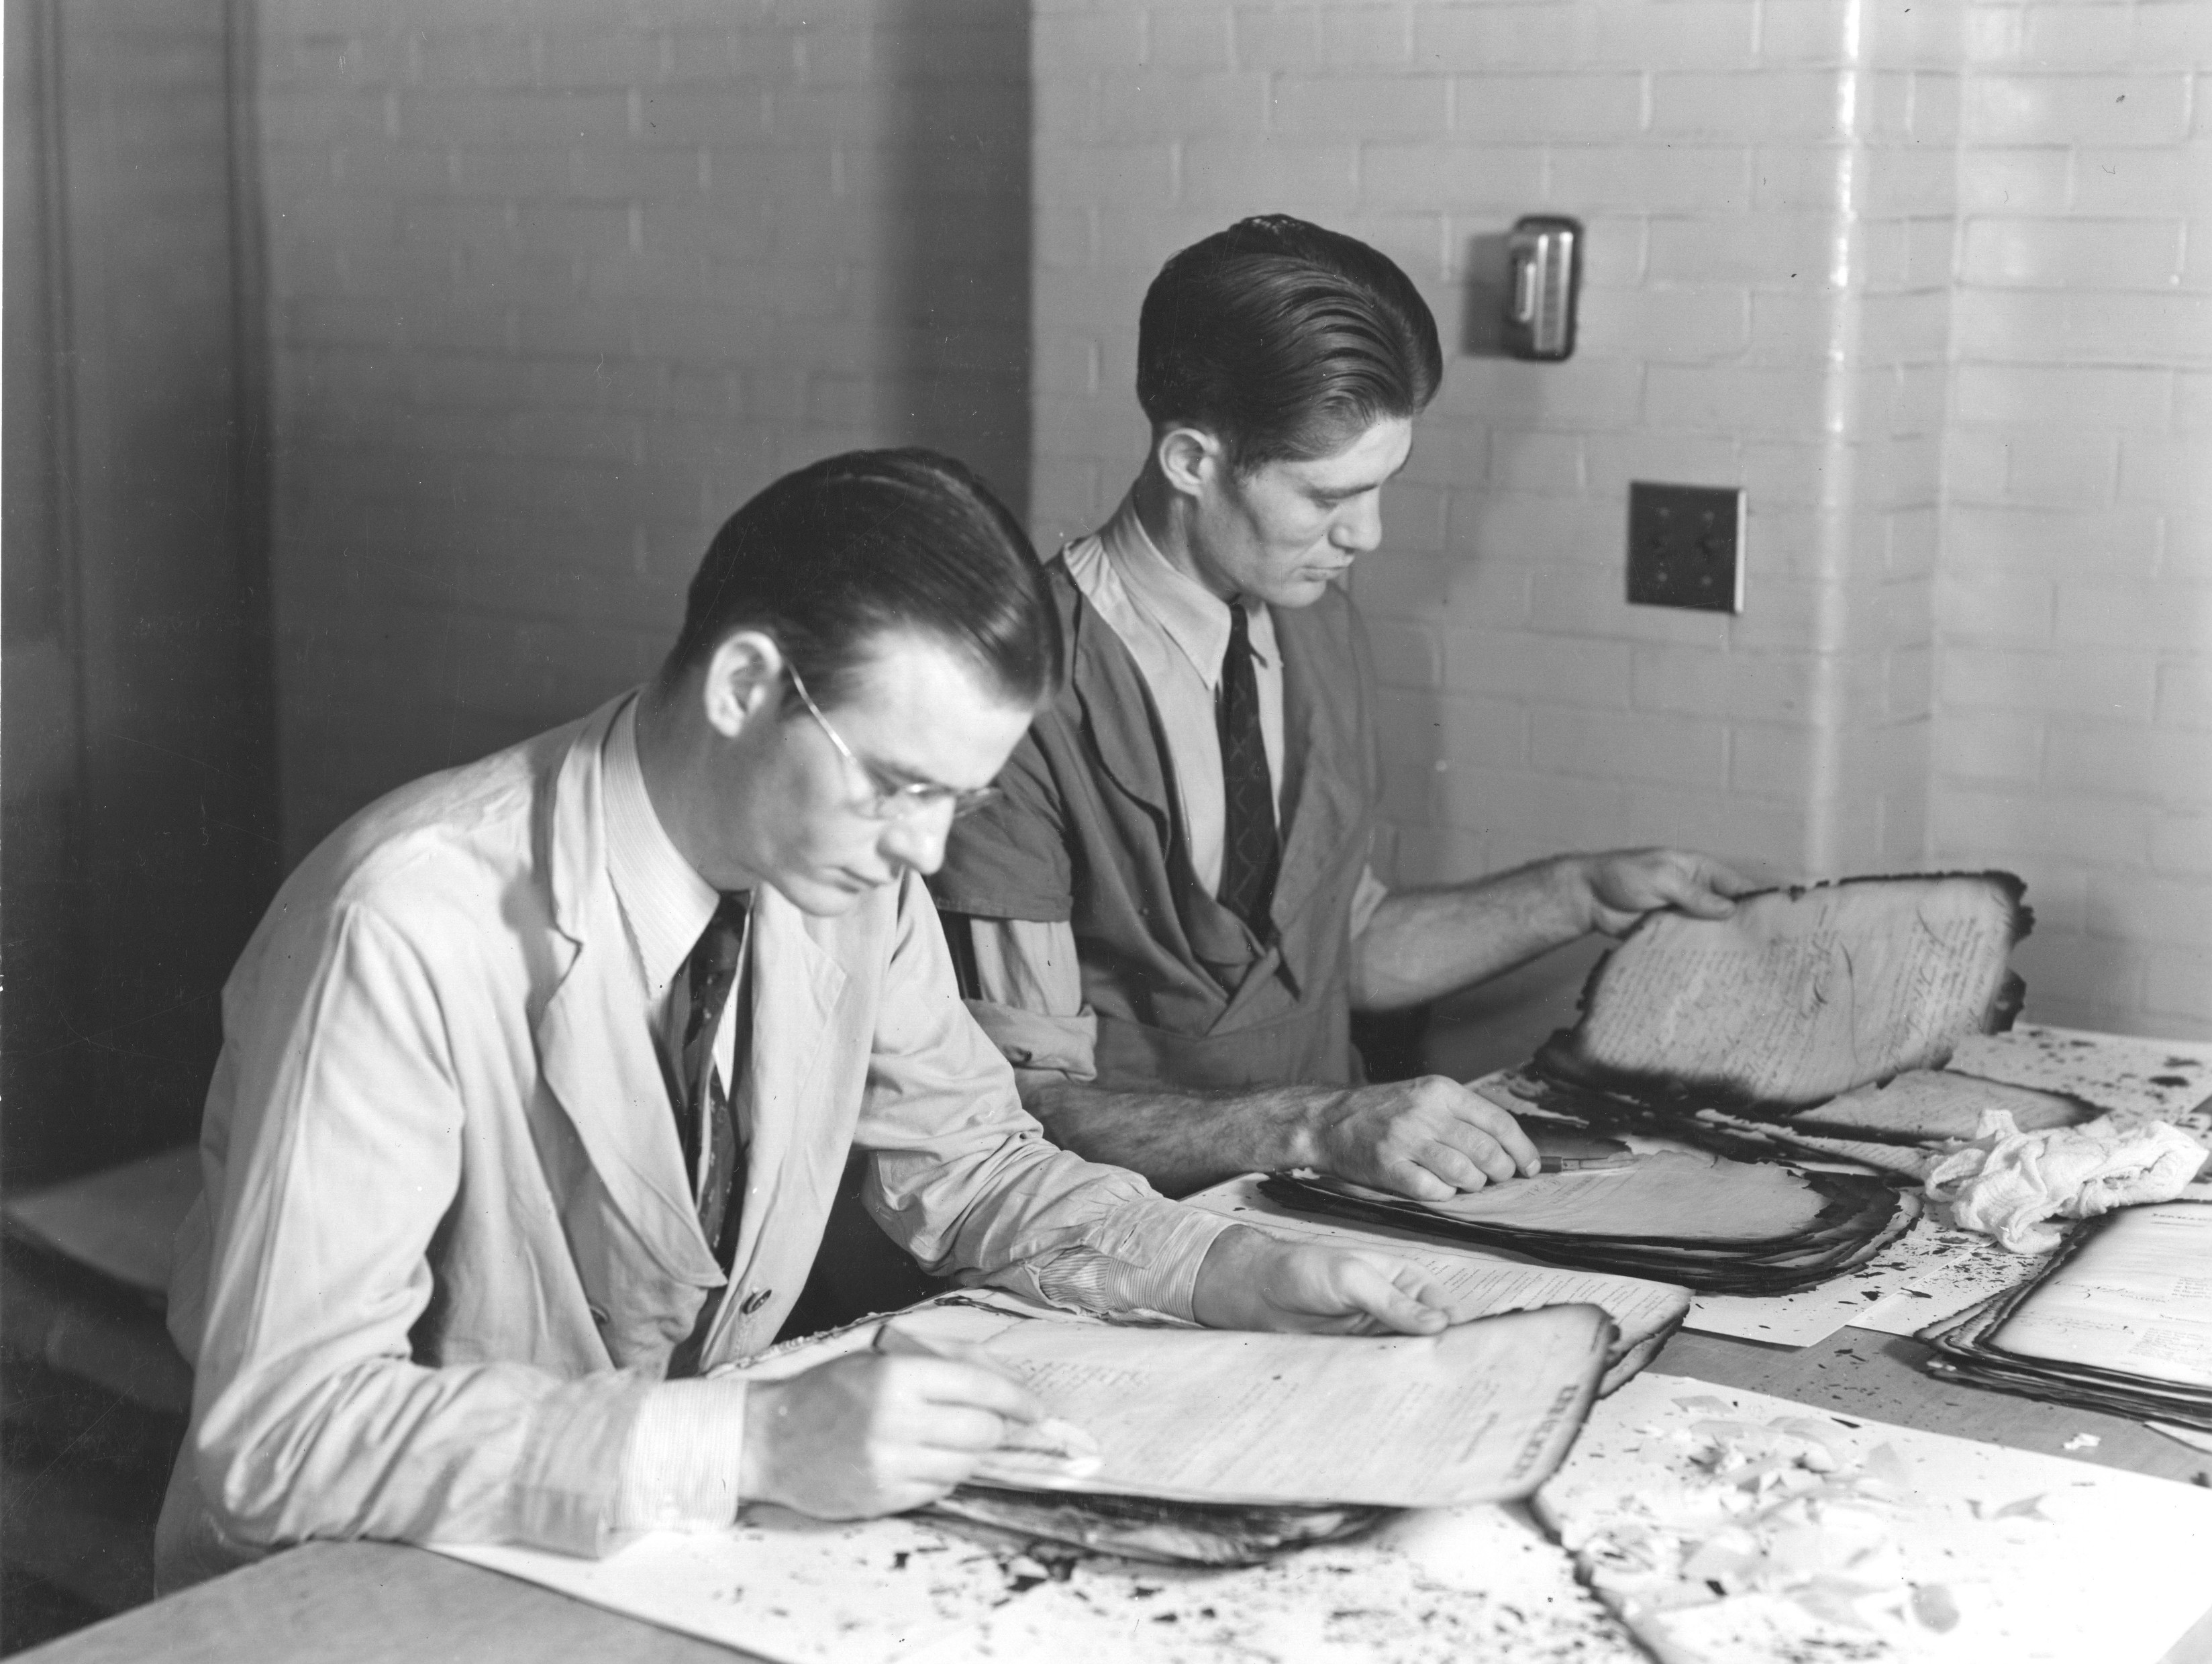 64-NA-174 Preparing Damaged Documents for Lamination, Div. of Repair and Preservation, 1937